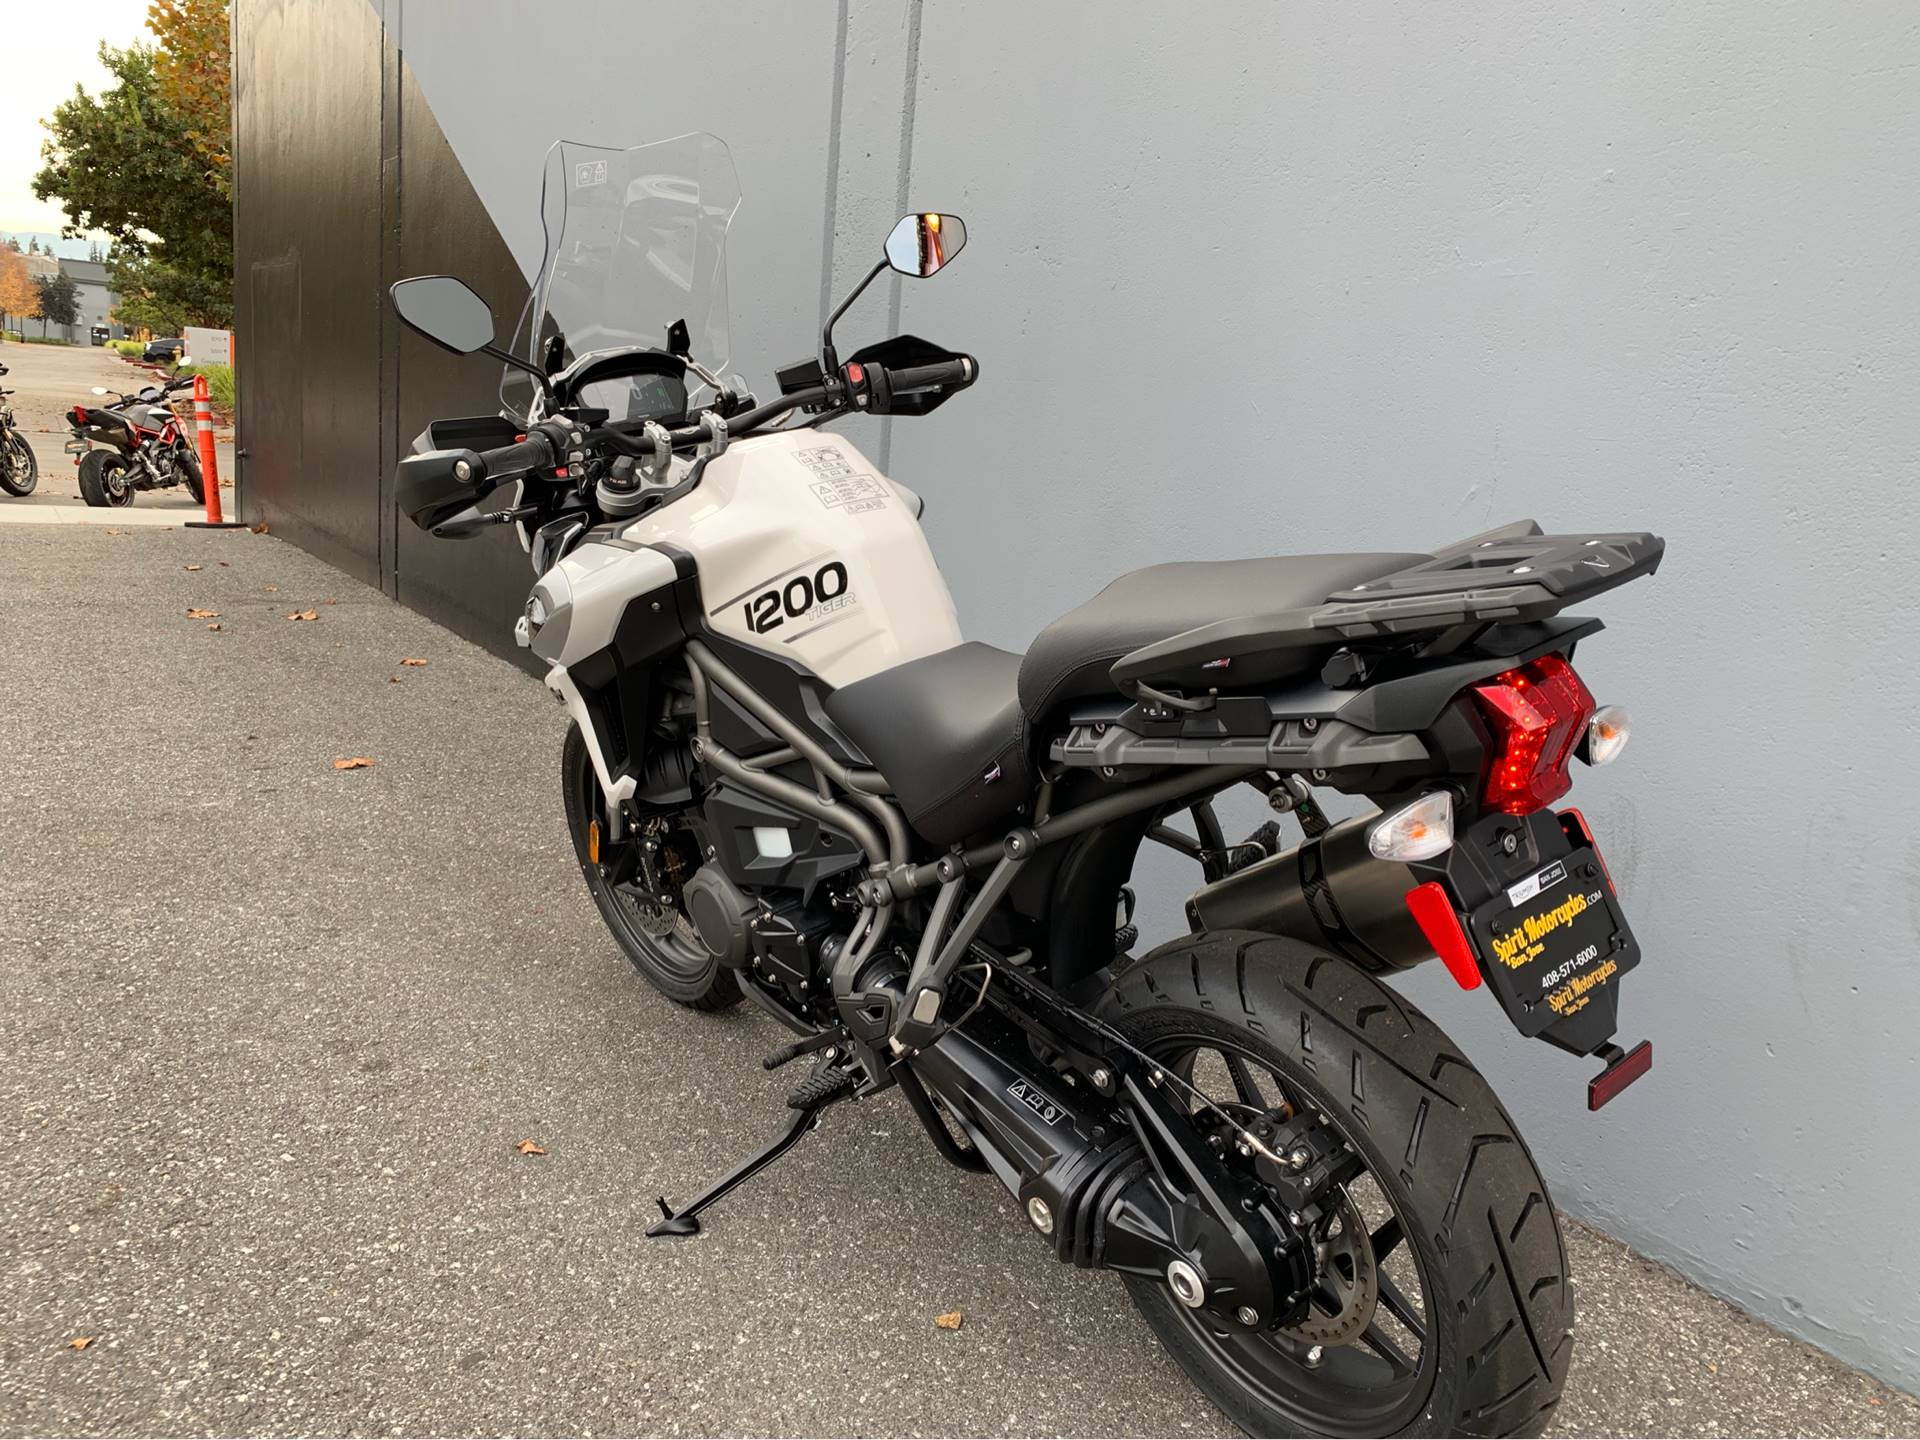 2019 Triumph Tiger 1200 XRt in San Jose, California - Photo 4